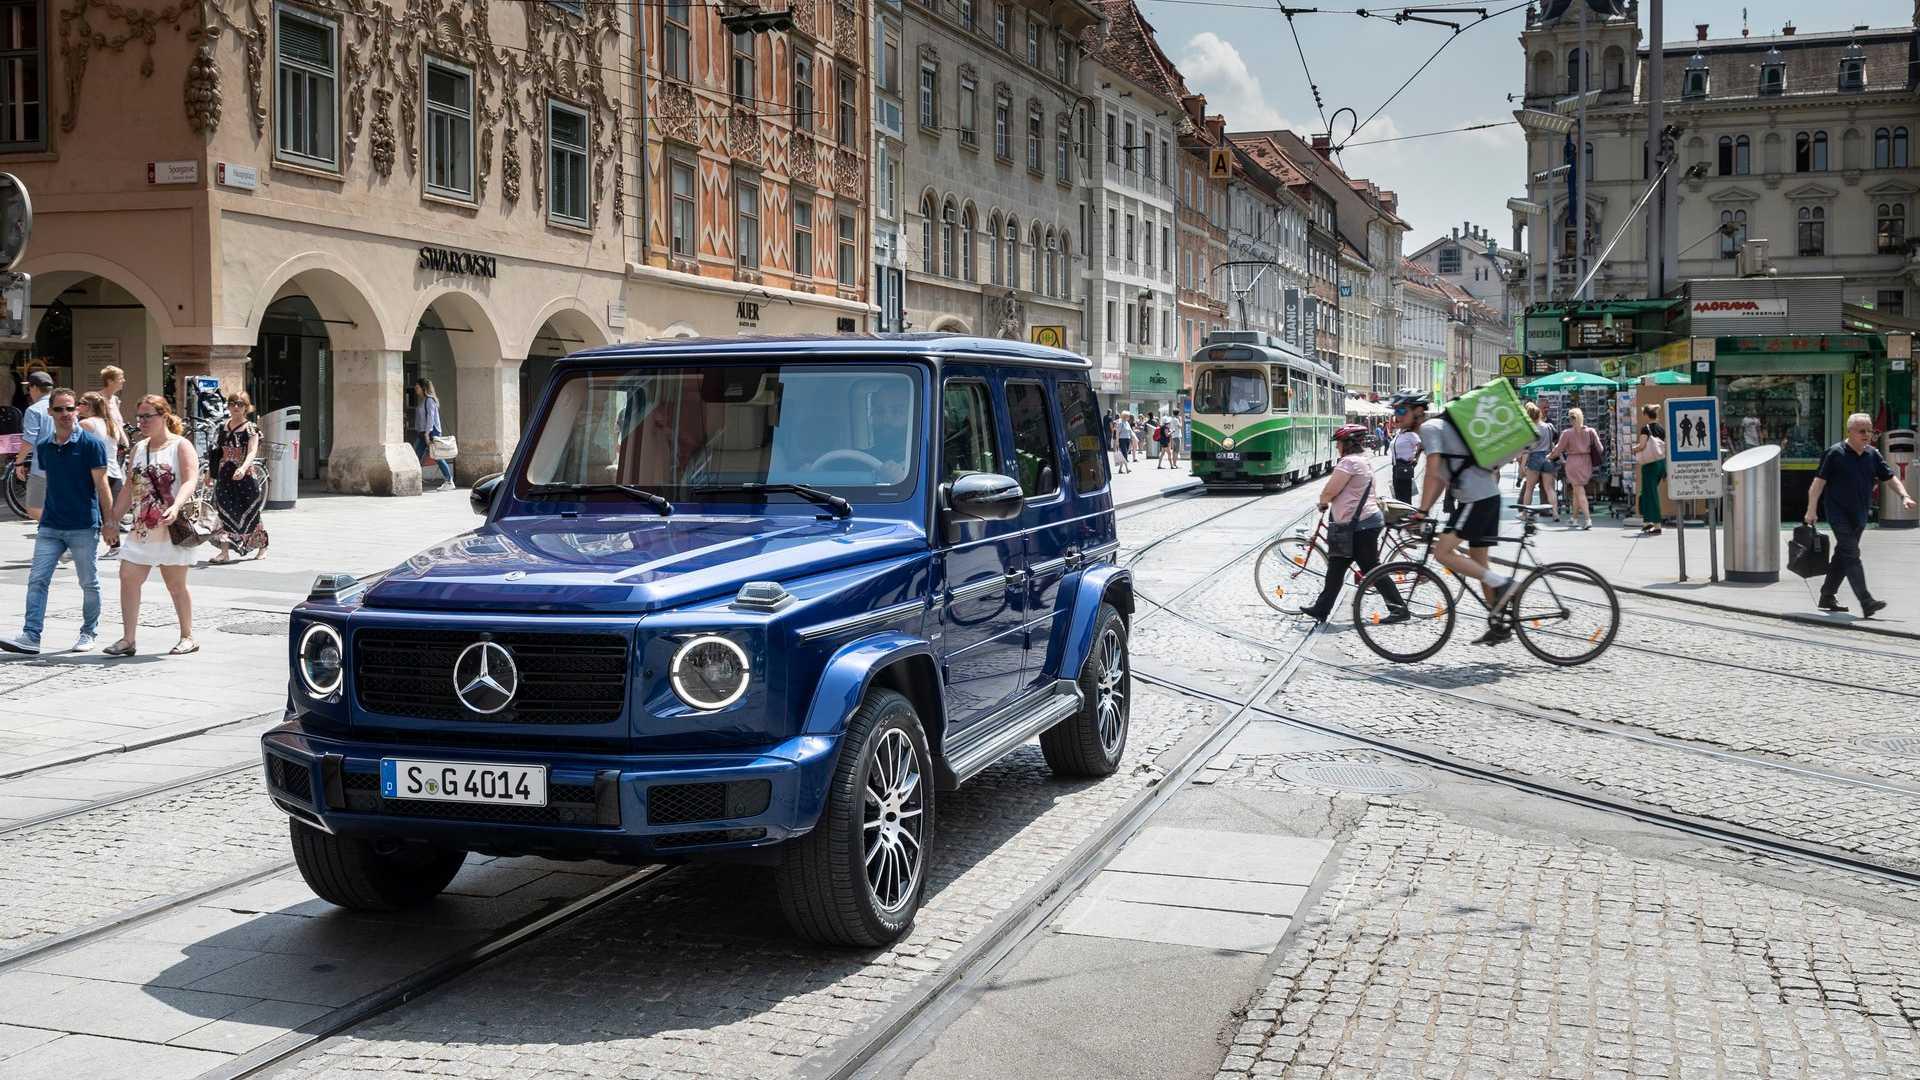 The Mercedes G-Class series celebrates its 40th anniversary this year, as well as 20 years of the G 55 AMG model